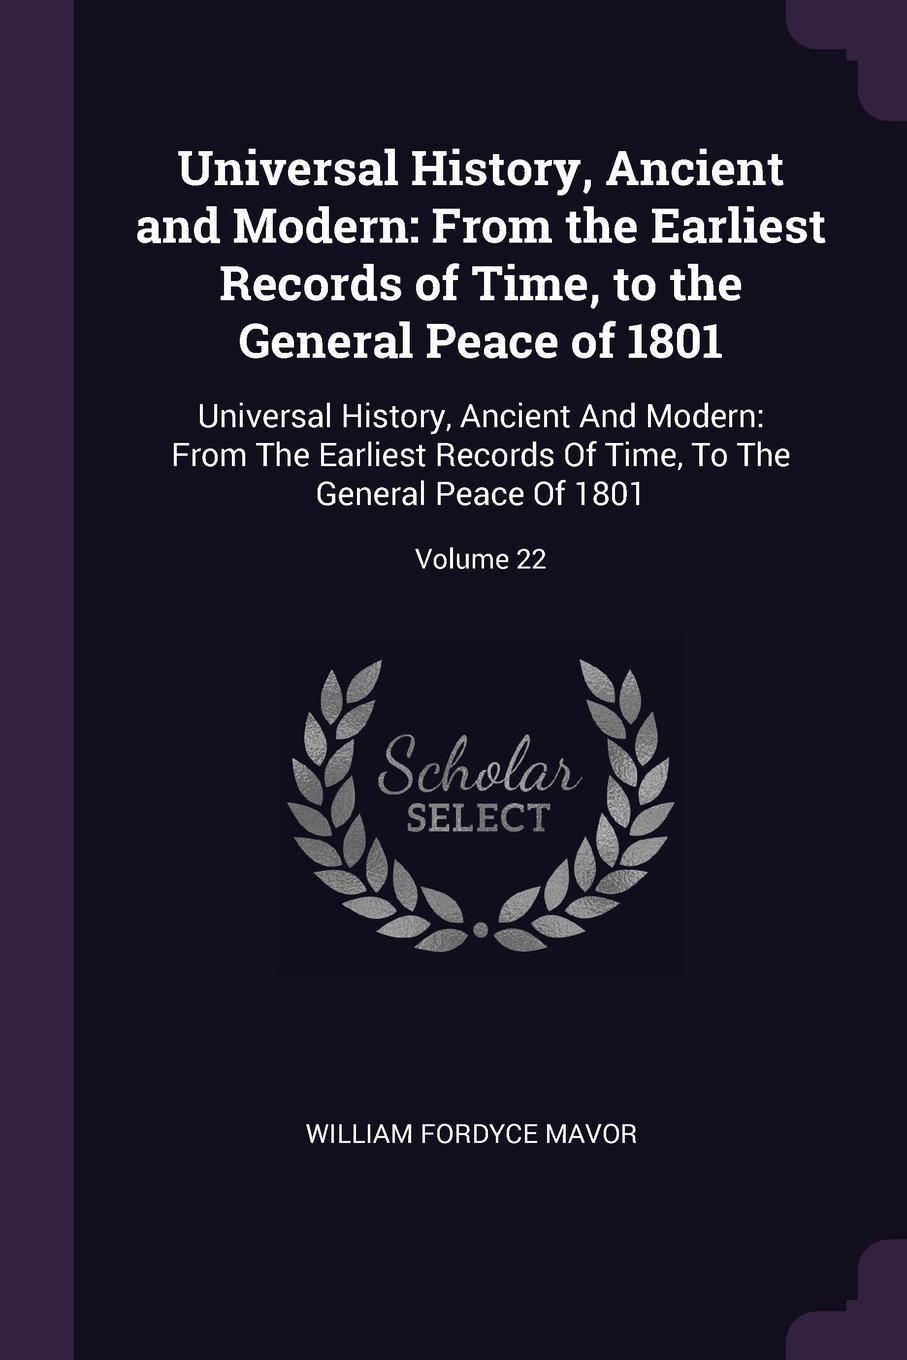 Universal History, Ancient and Modern: From the Earliest Records of Time, to the General Peace of 1801: Universal History, Ancient And Modern: From ... Time, To The General Peace Of 1801; Volume 22 pdf epub